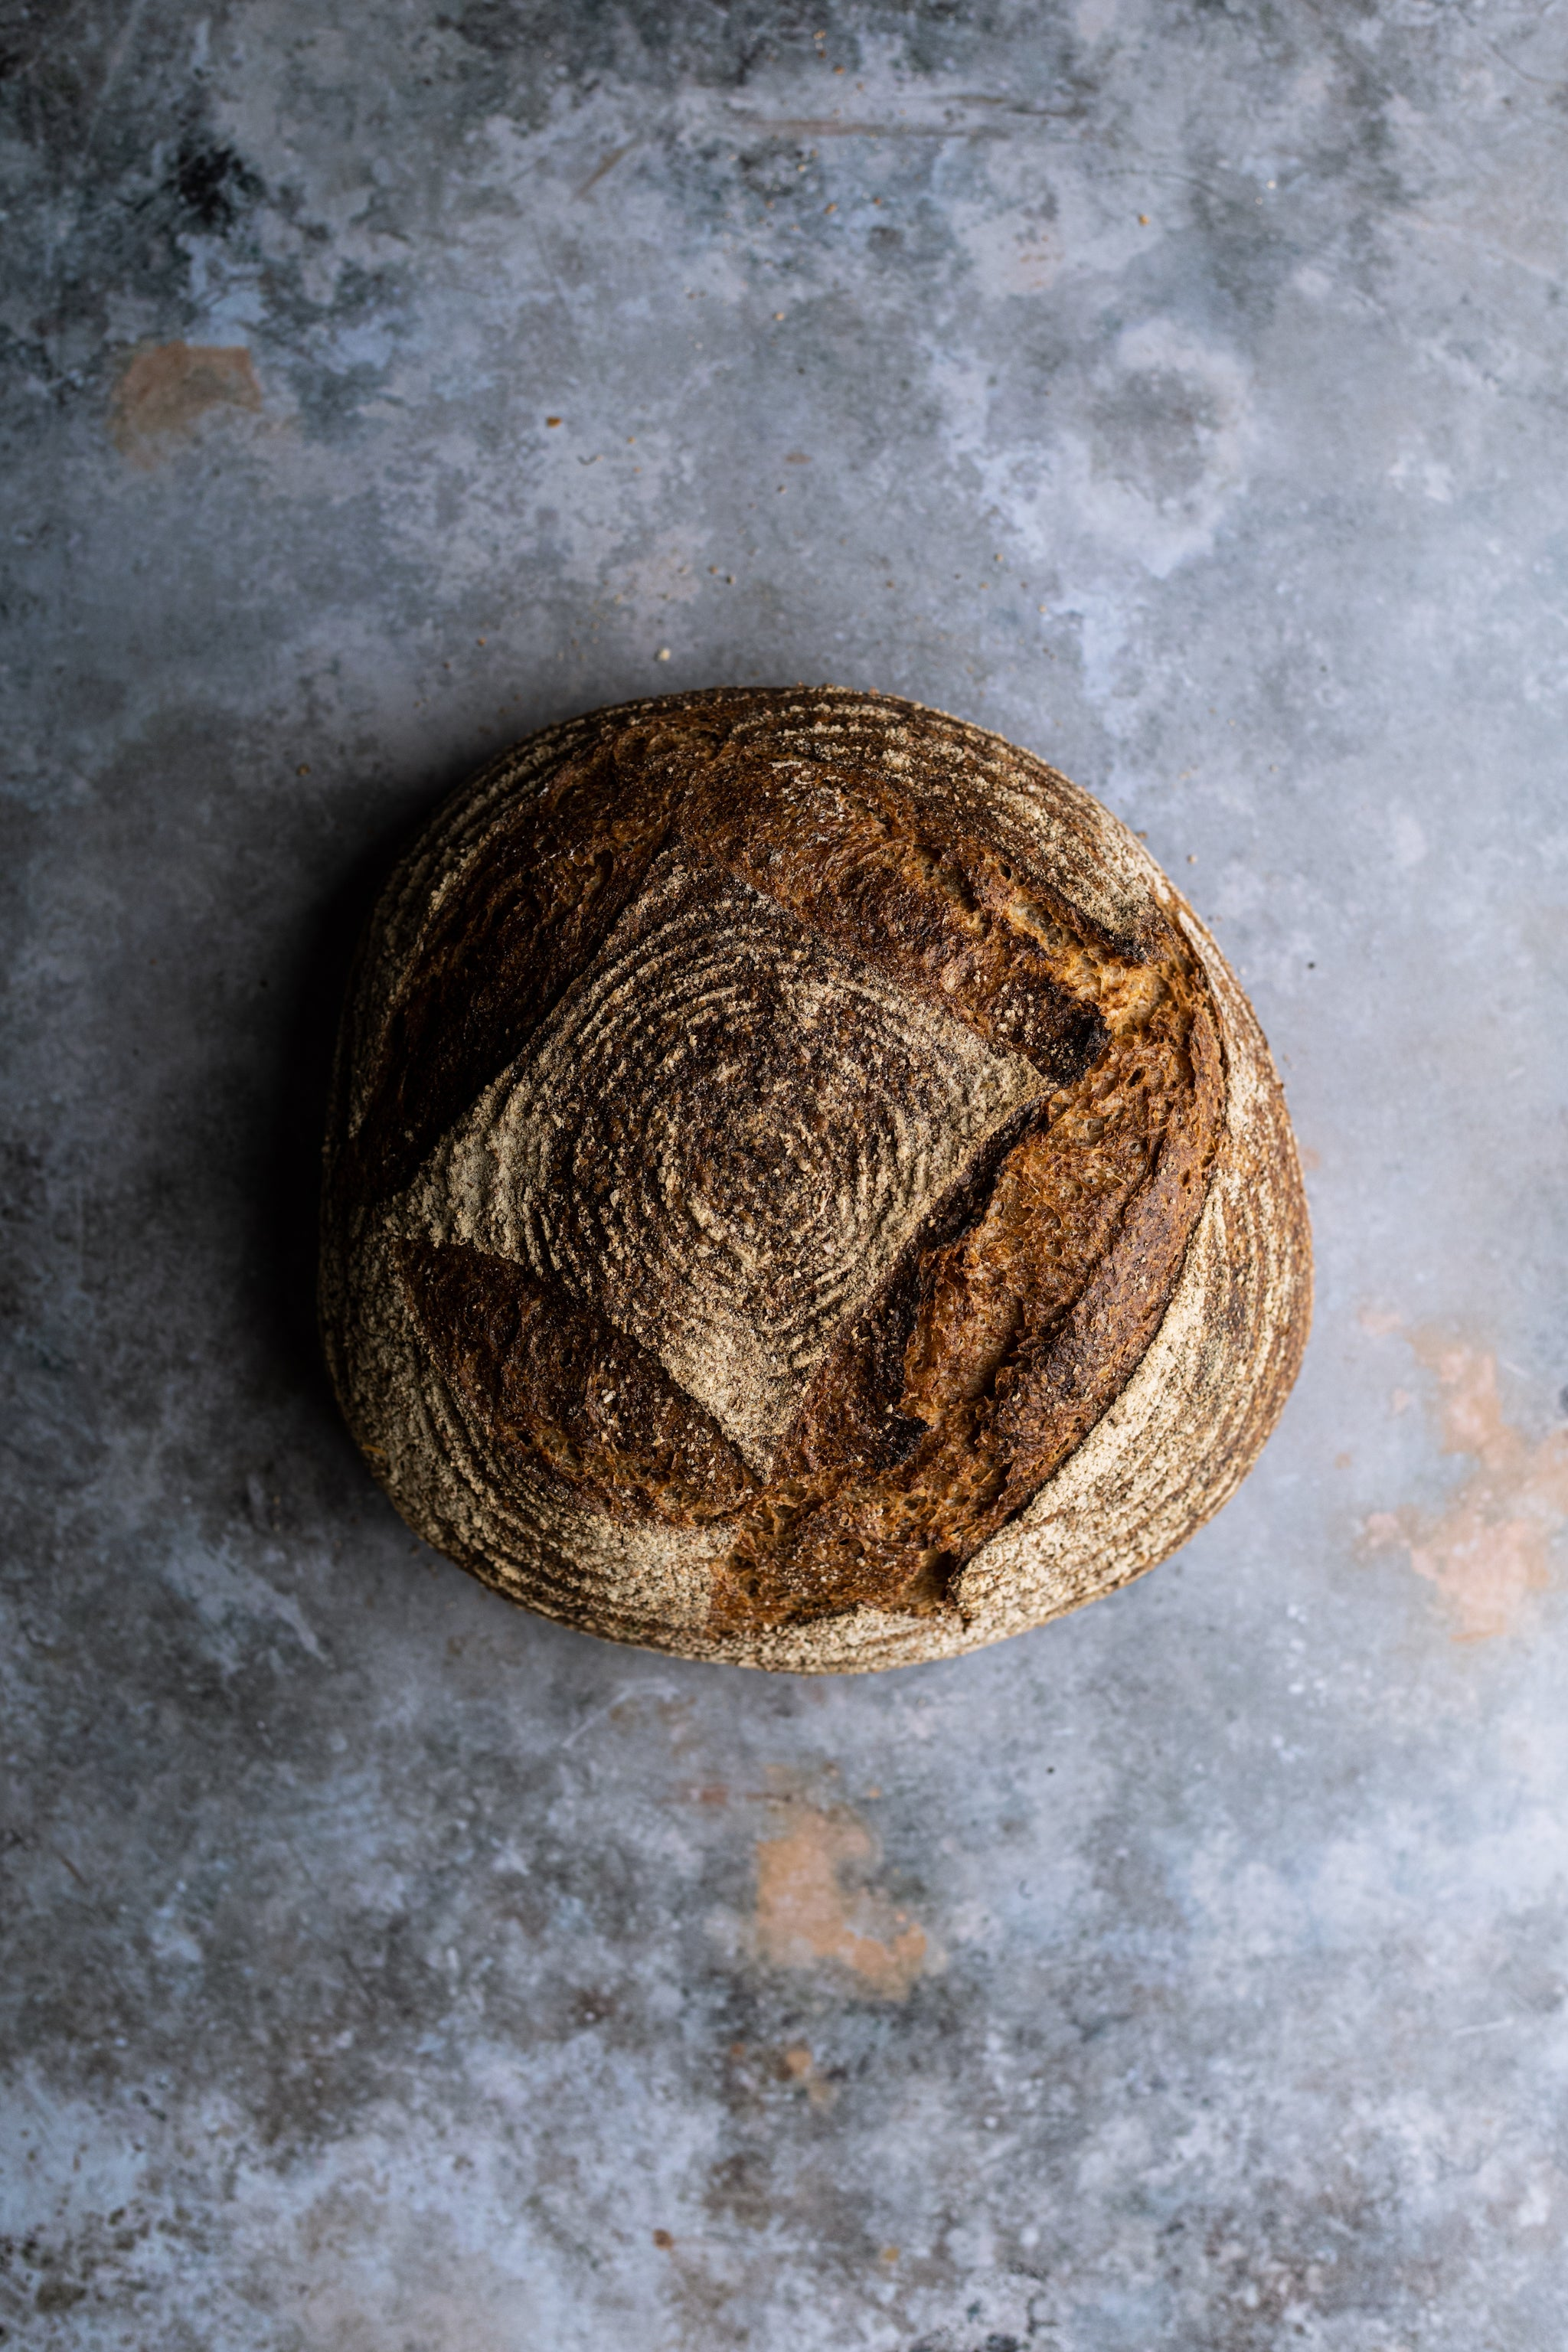 //cdn.shopify.com/s/files/1/0859/6096/files/wholemeal_sourdough.jpg?v=1594370444